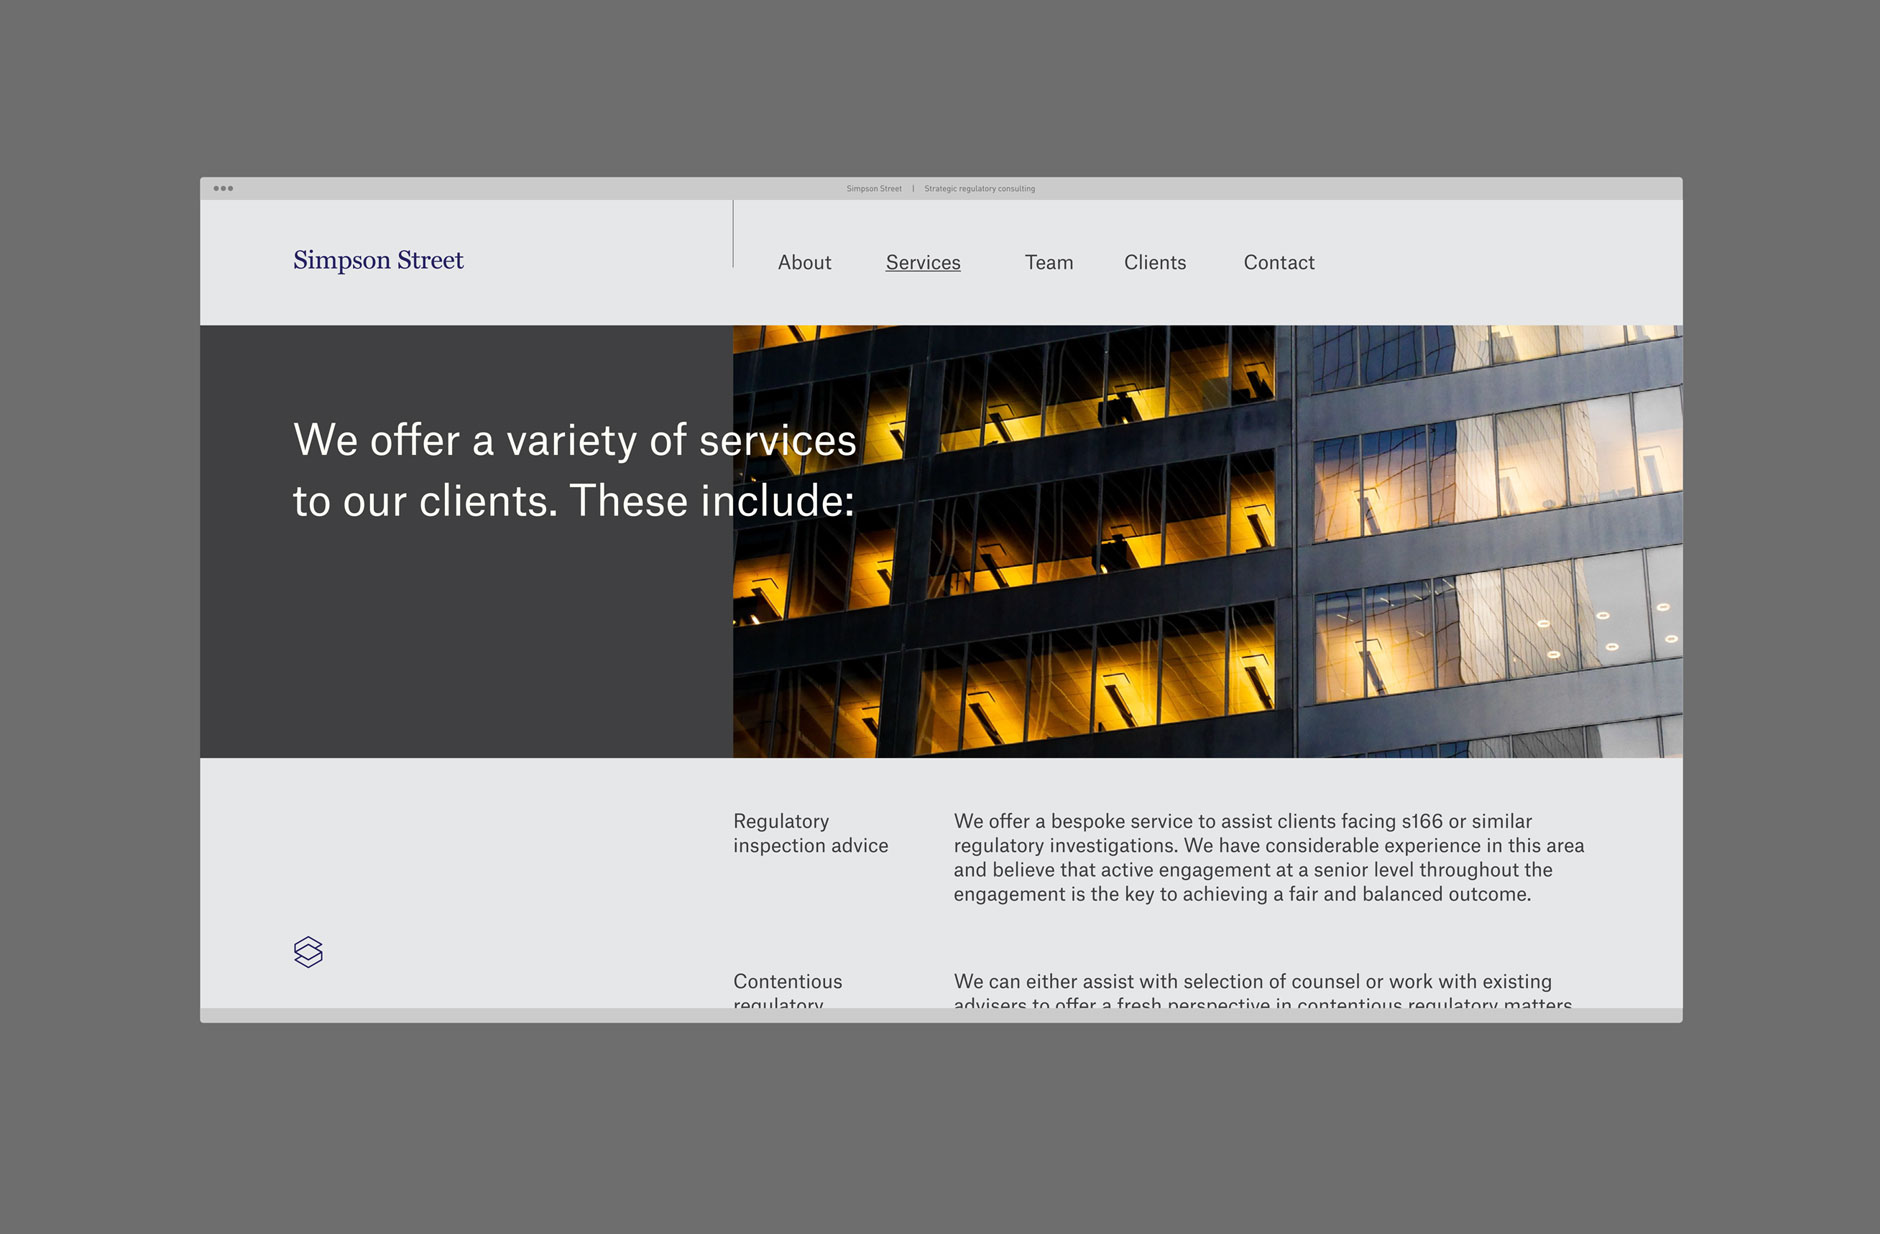 Simpson Street Website Design